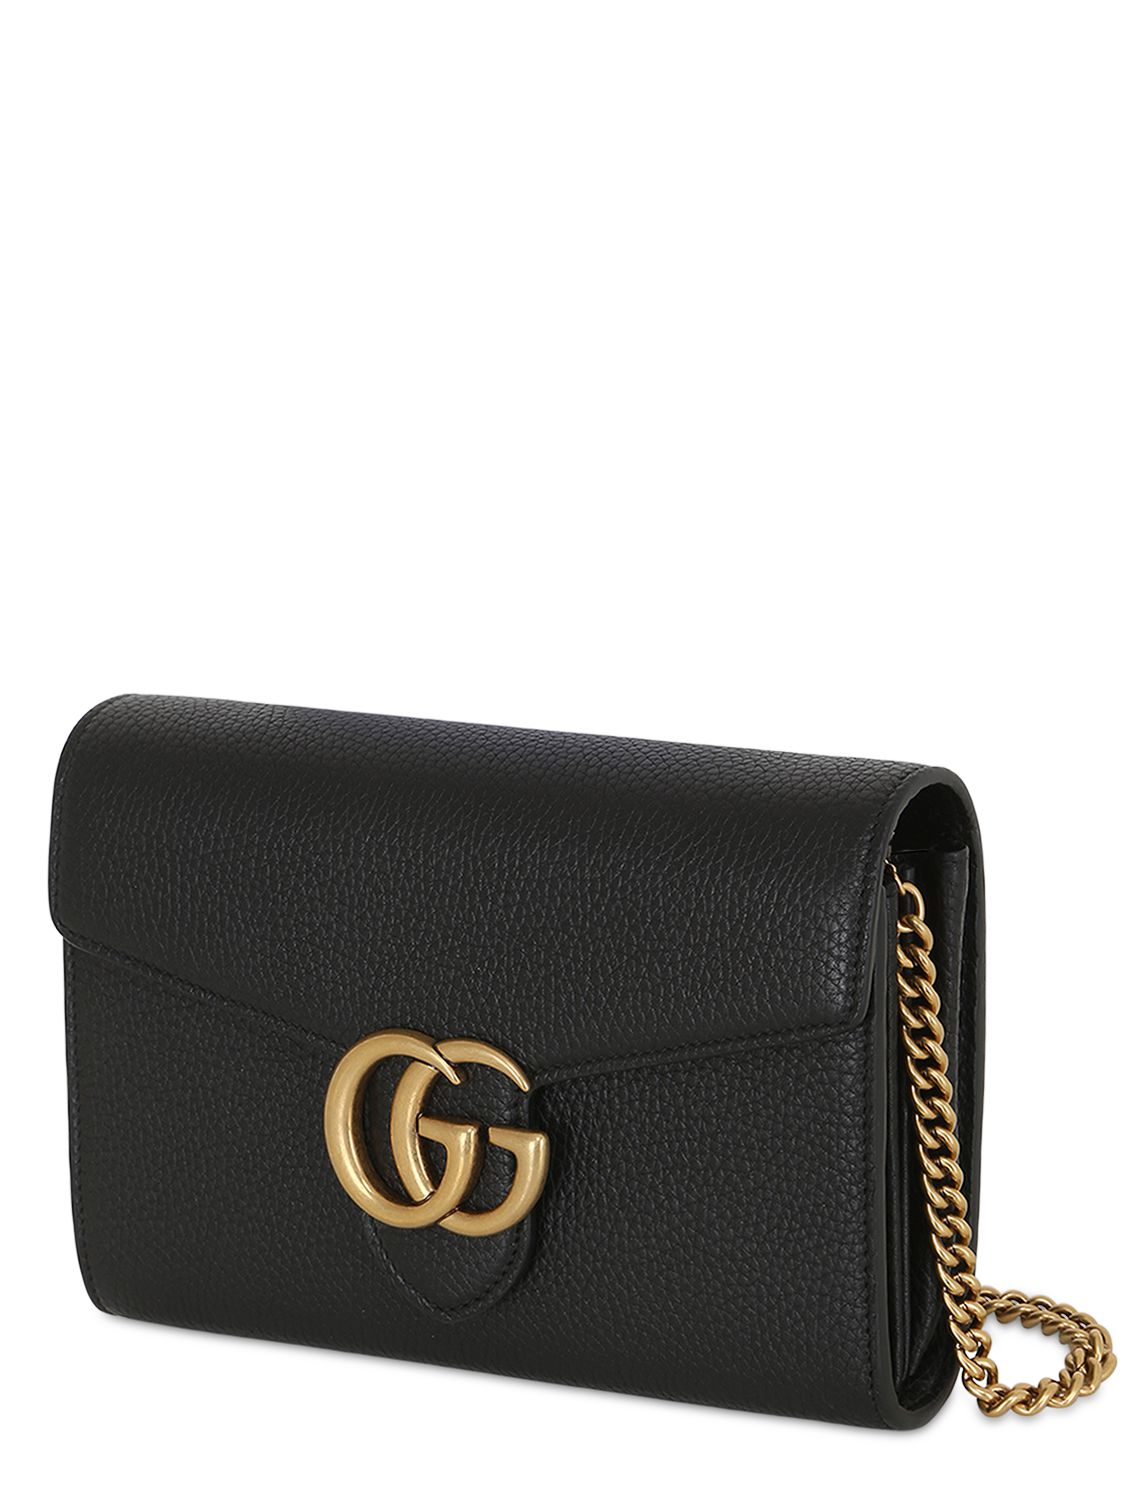 gucci gg buckle grained leather shoulder bag in black lyst